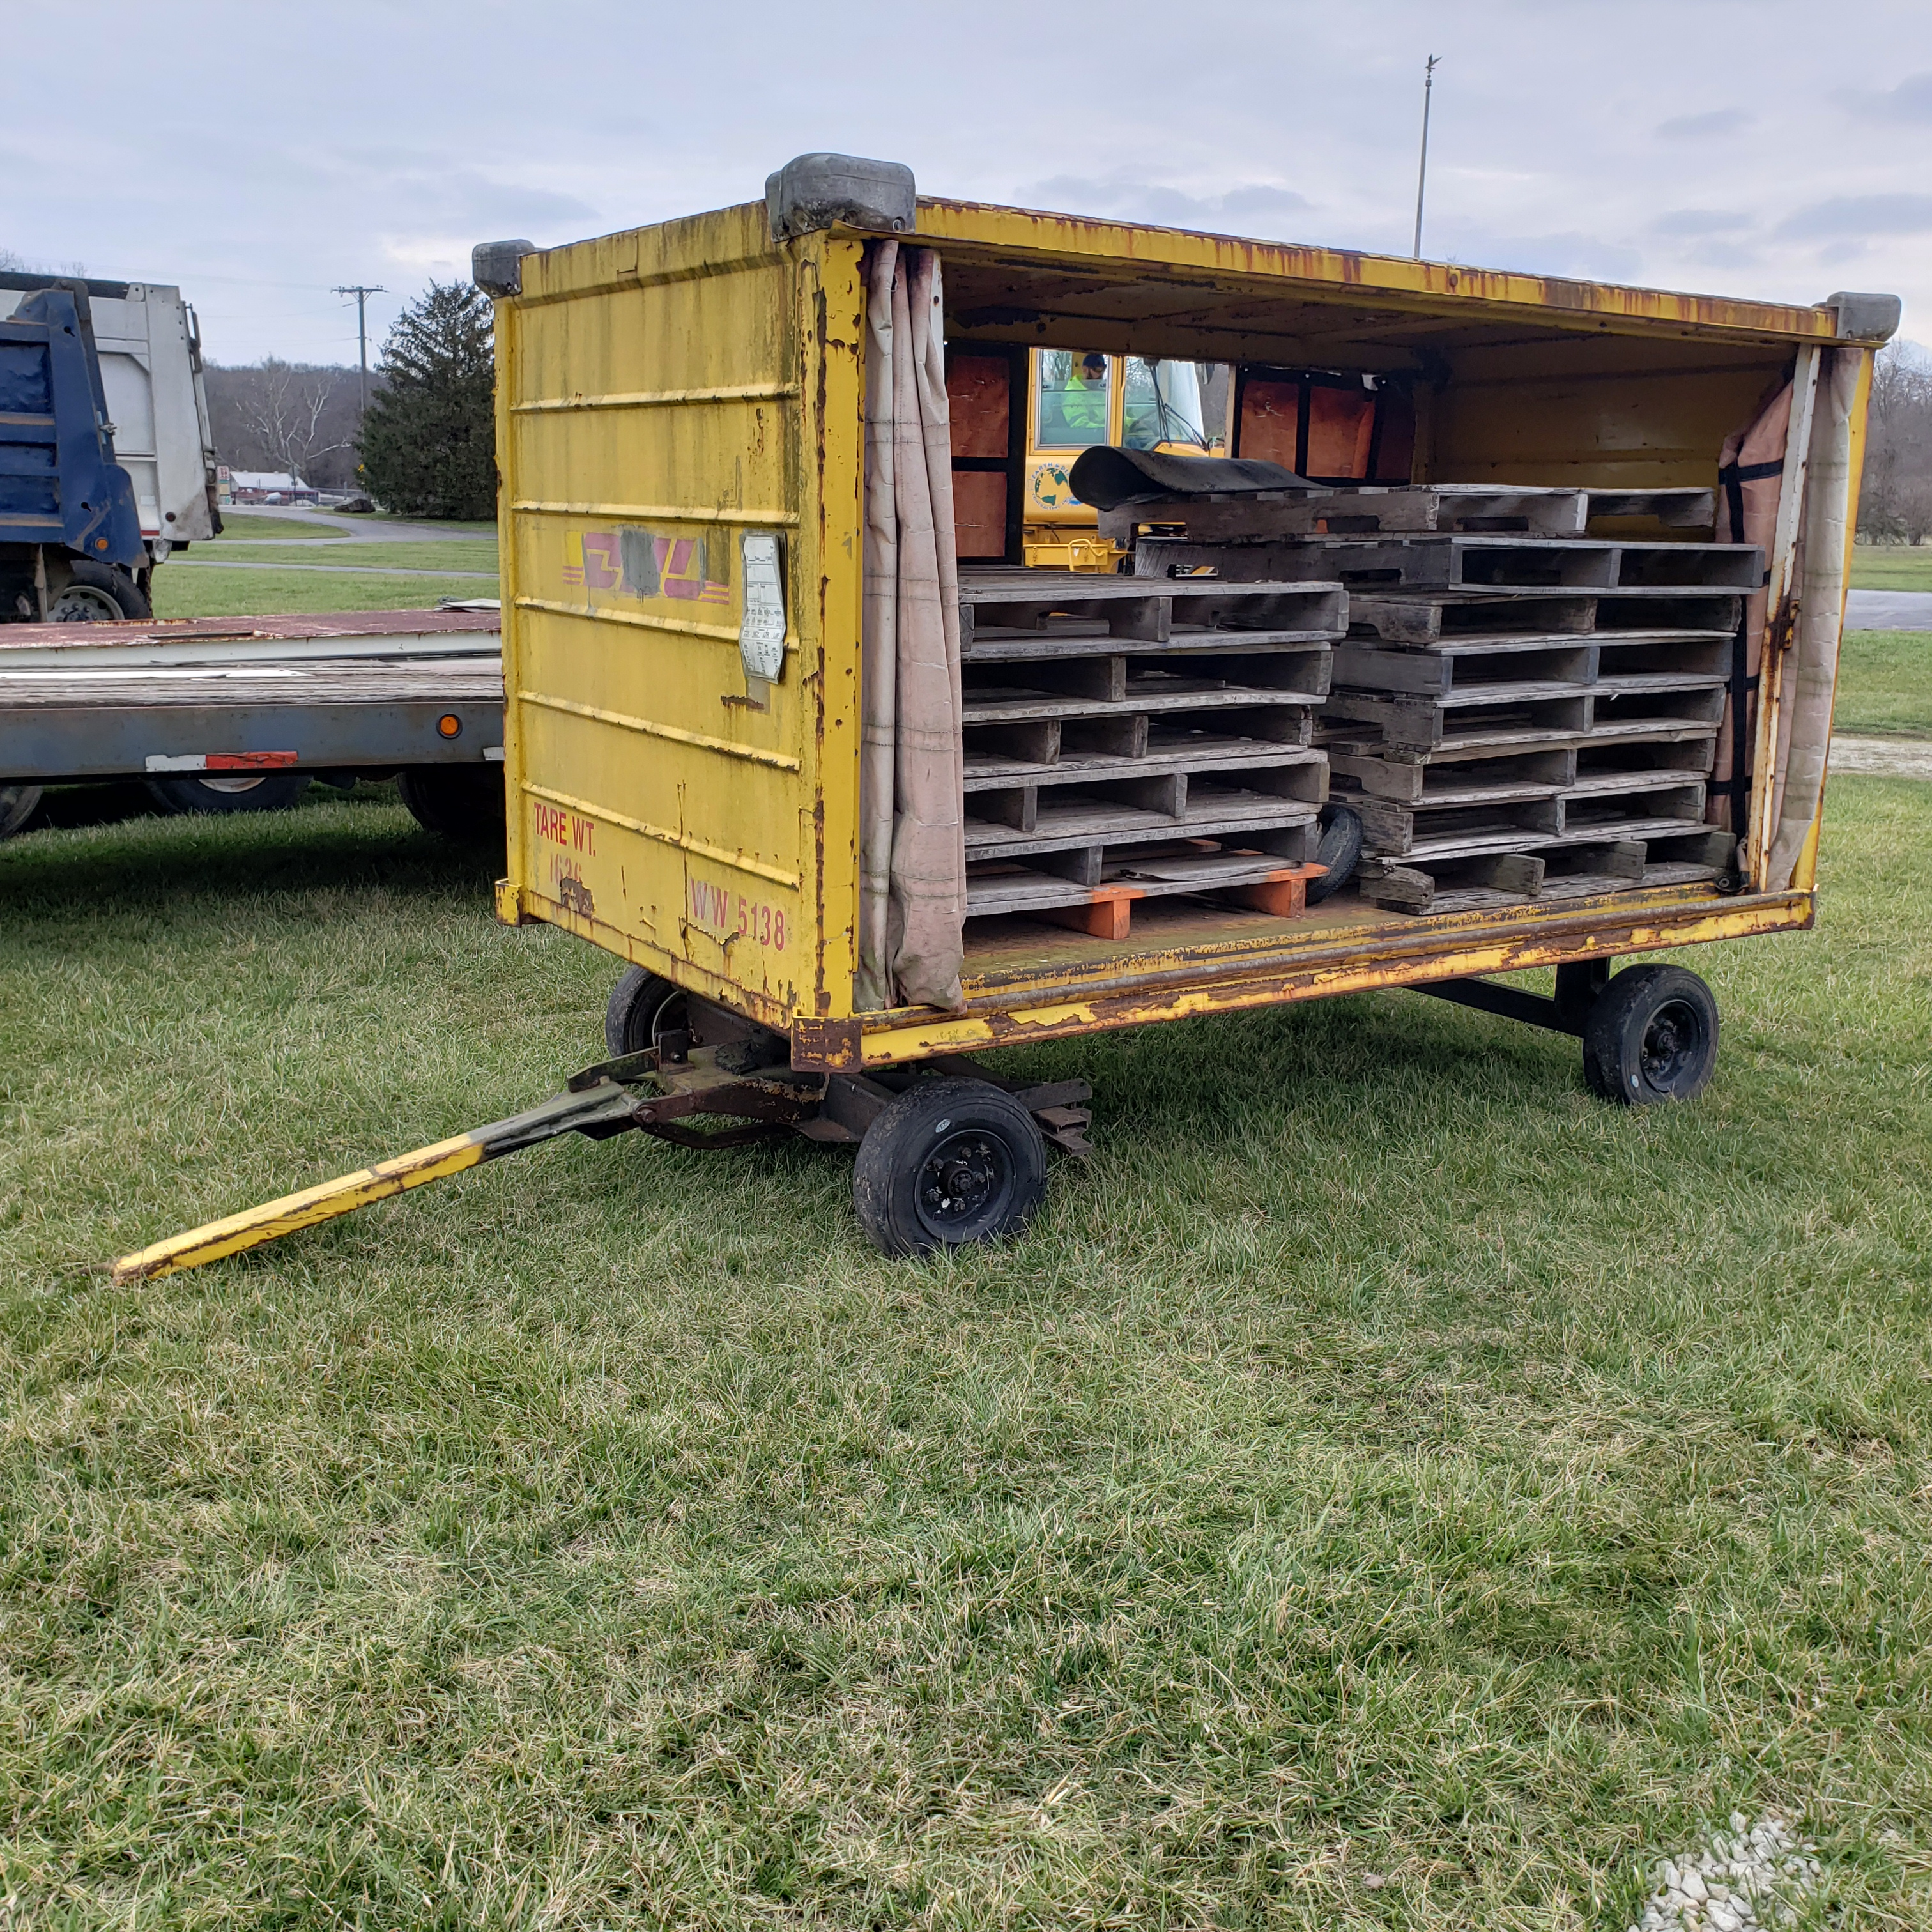 Lot 9 - Enclosed 4 Wheel Baggage Type Trailer, 60 in Wide, 9 ft 6 in Long, 58 in High, Hard Tires